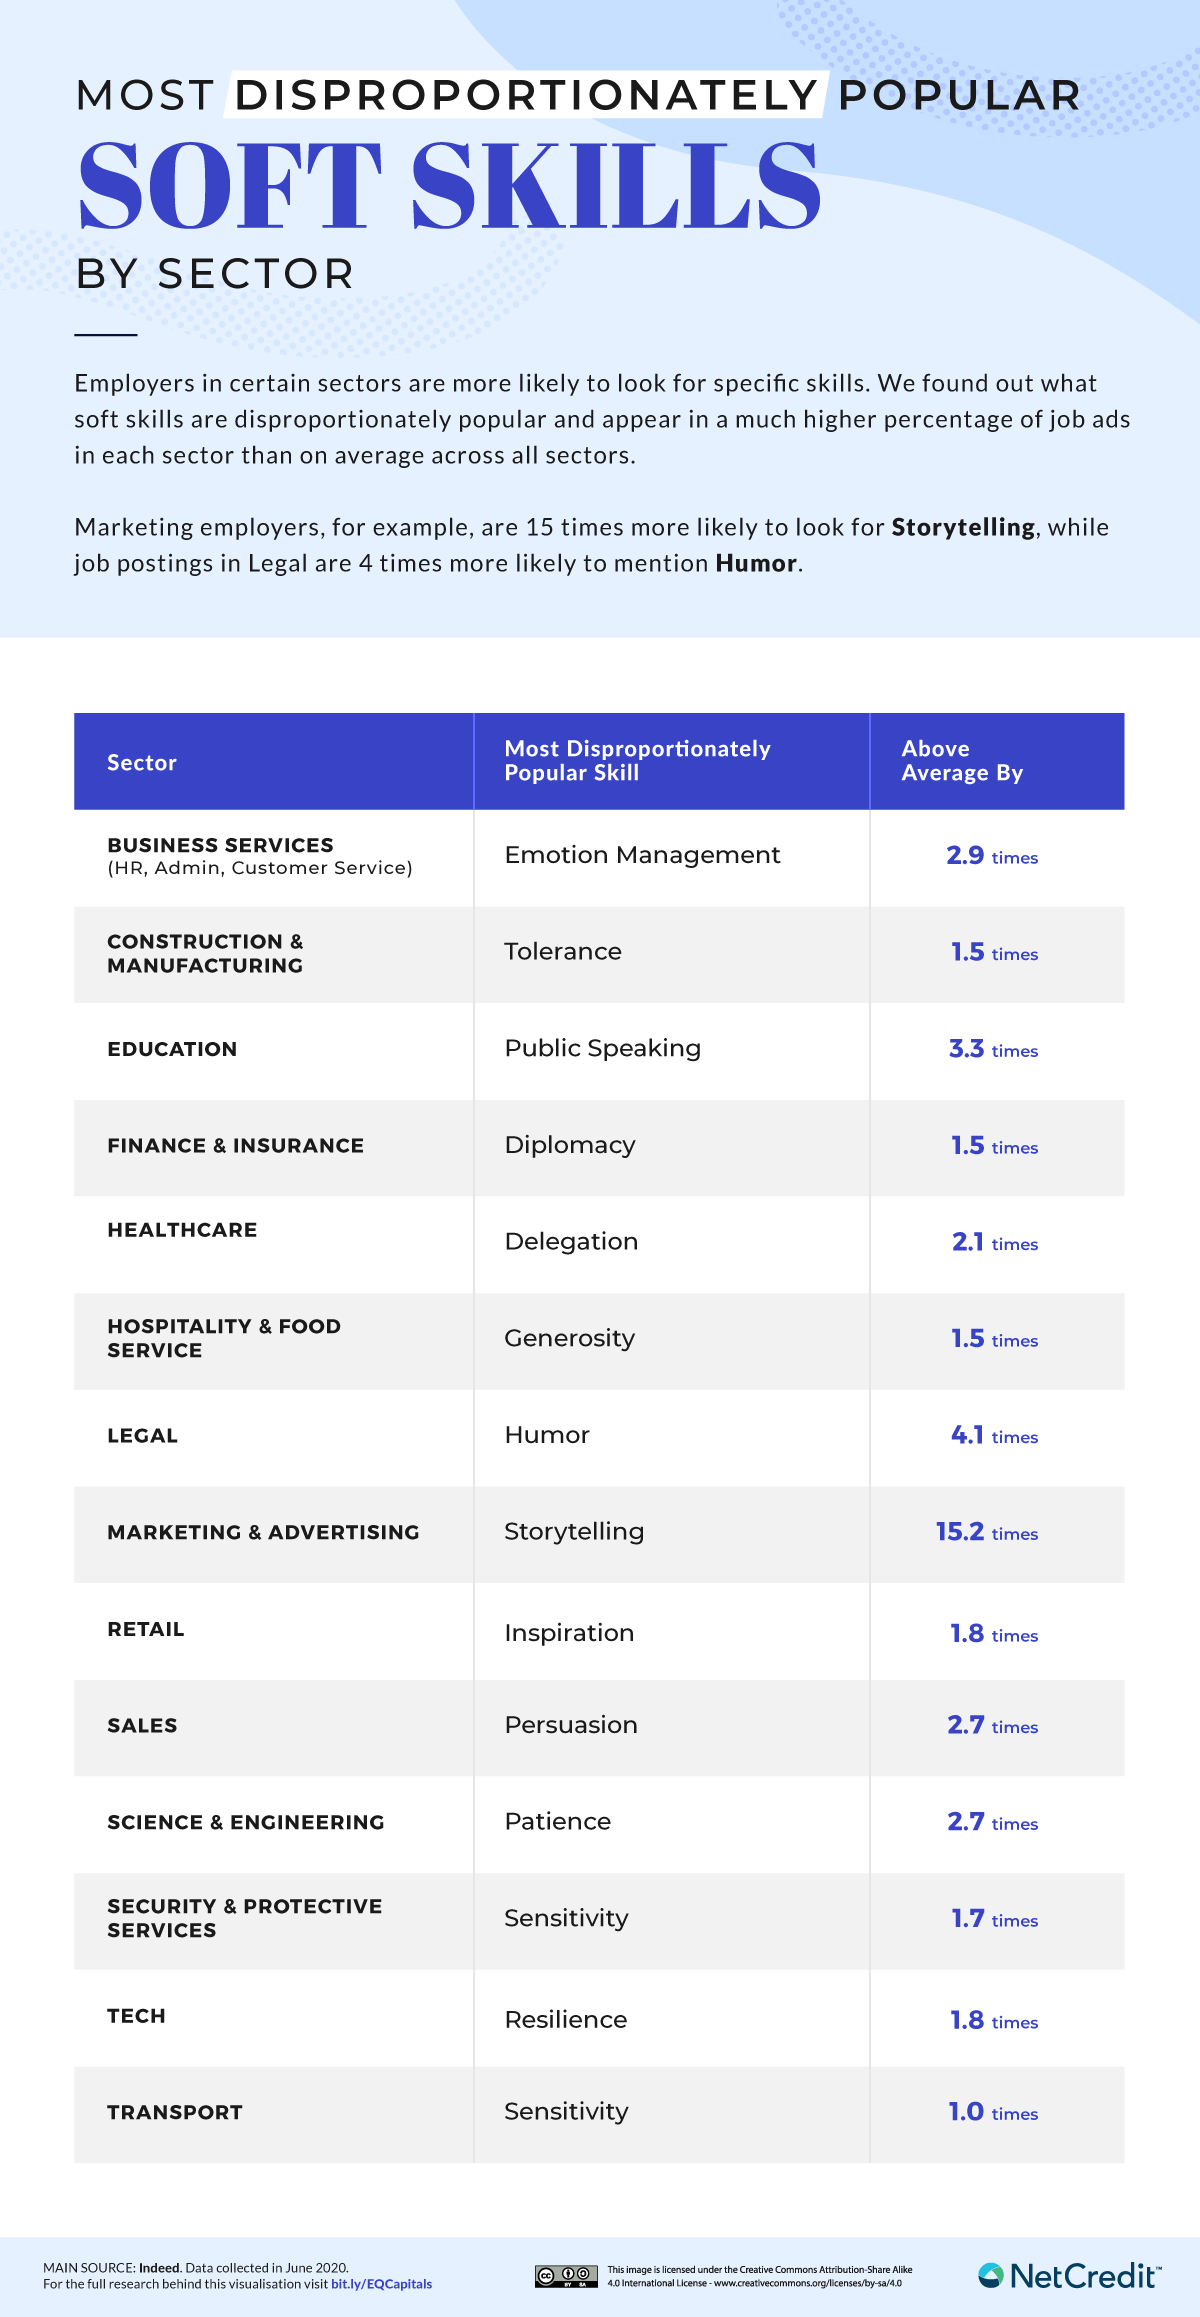 Most disproportionately popular soft skills by sector